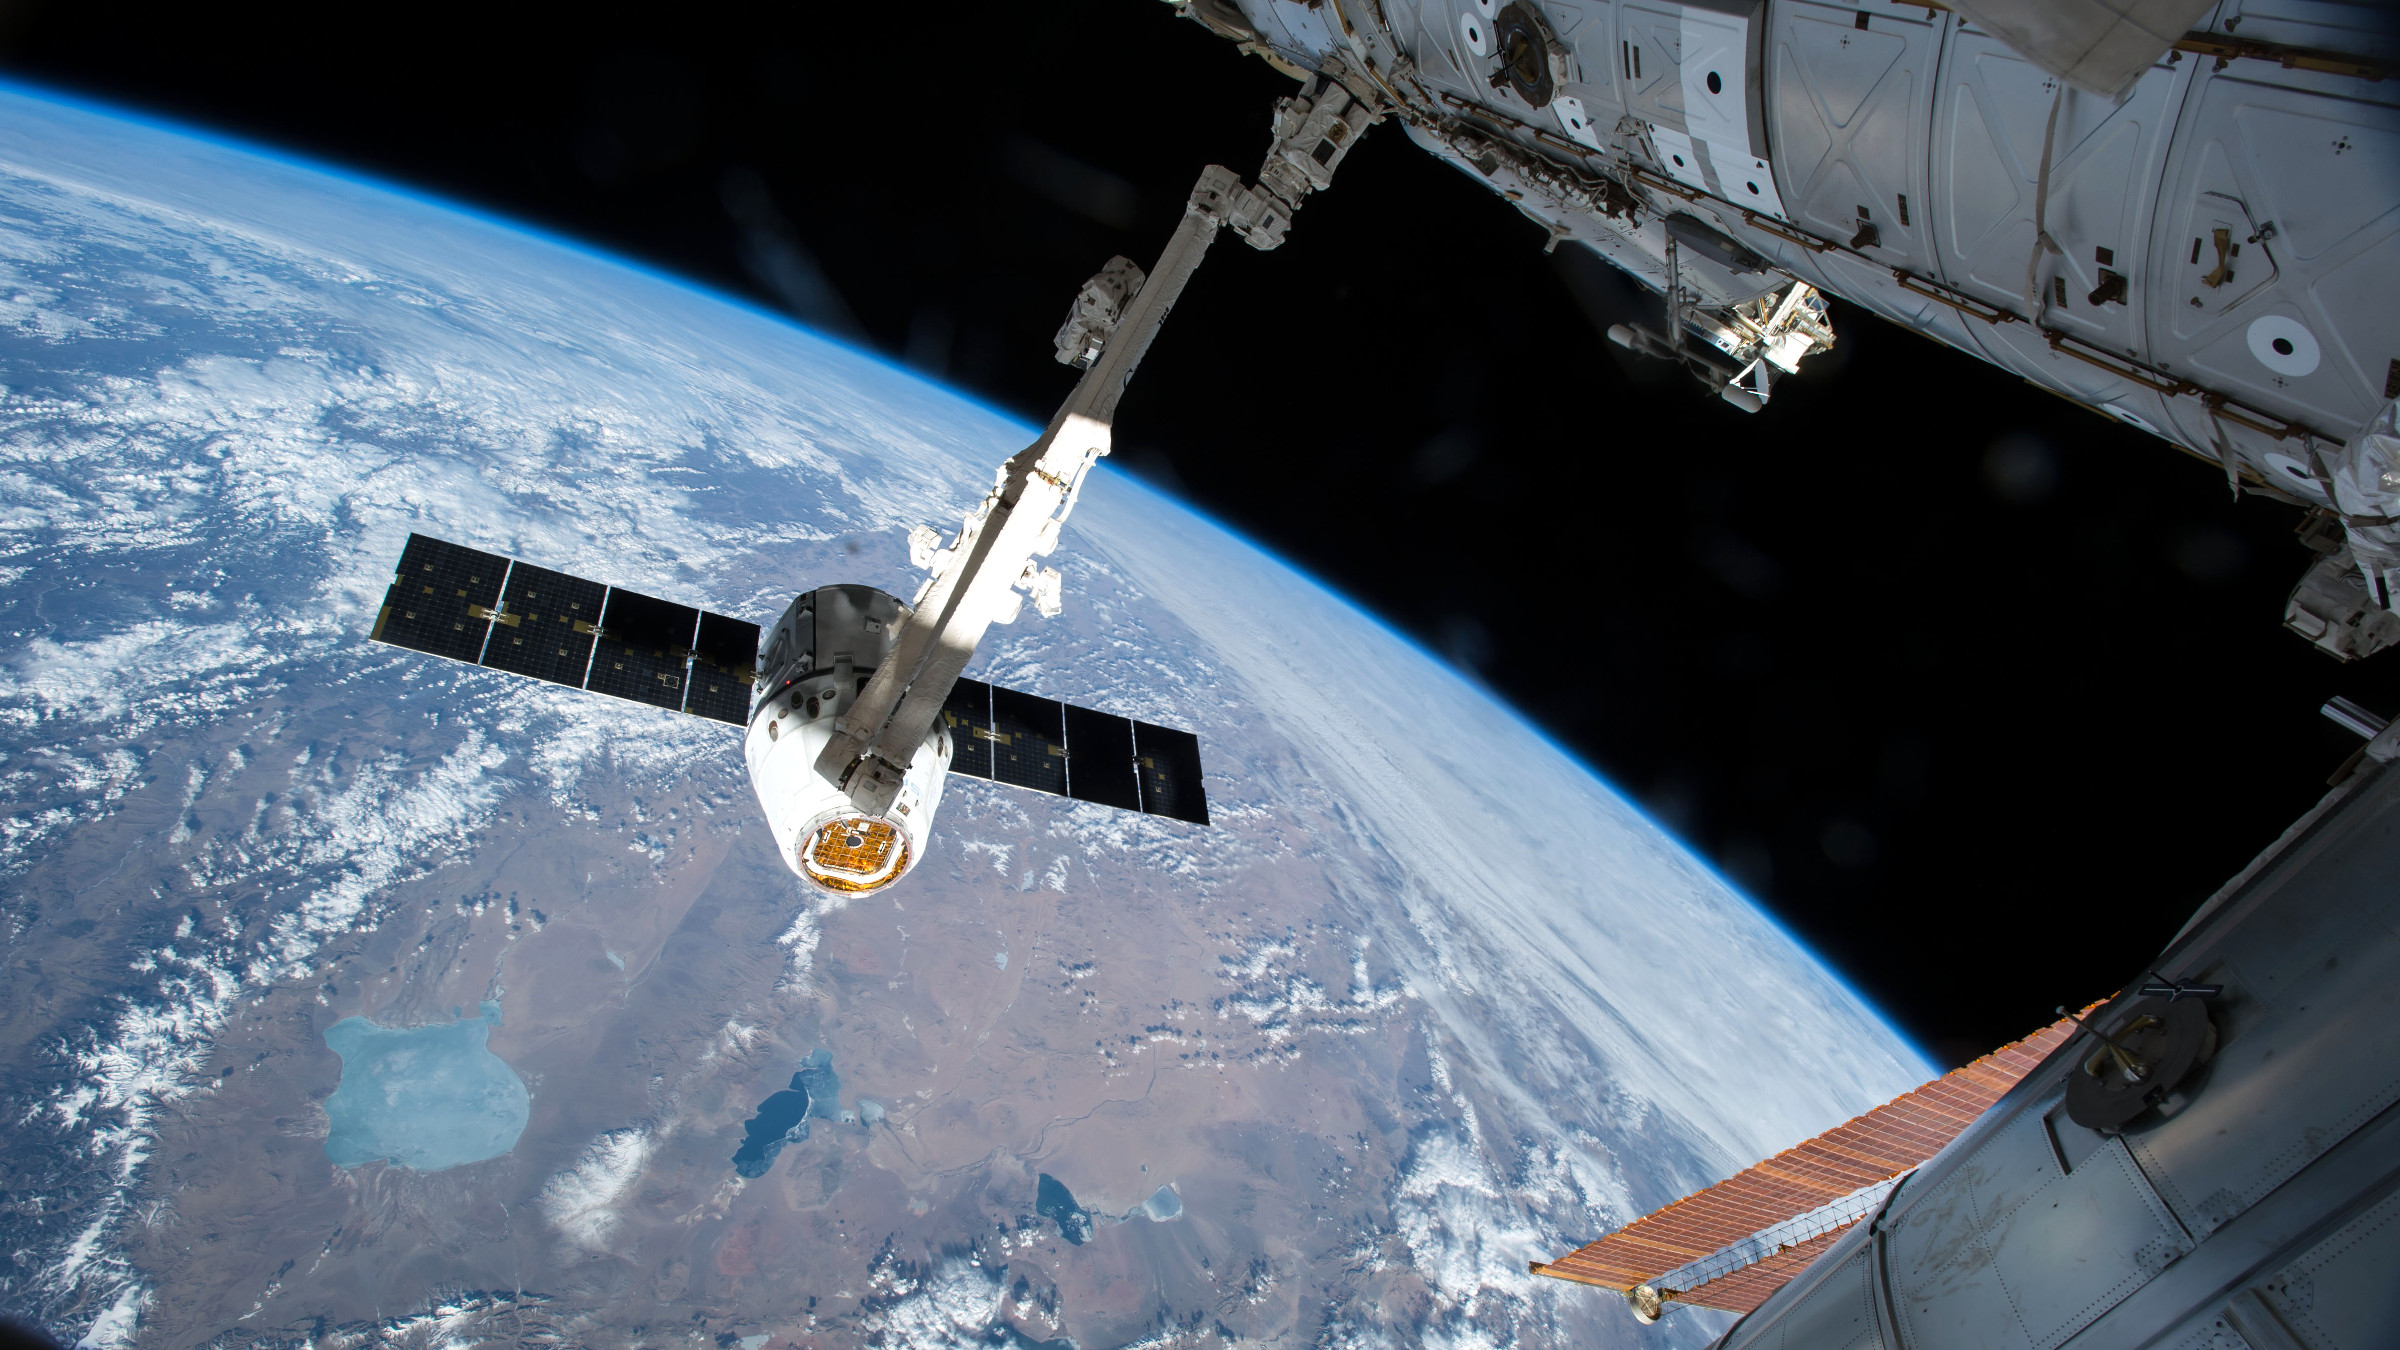 The Canadarm 2 reaches out to capture the SpaceX Dragon cargo spacecraft and prepare it to be pulled into its port on the International Space Station Friday April 17, 2015. The Canadarm2 robotic arm will maneuver Dragon to its installation position at the Earth-facing port of the Harmony module where it will reside for the next five weeks.